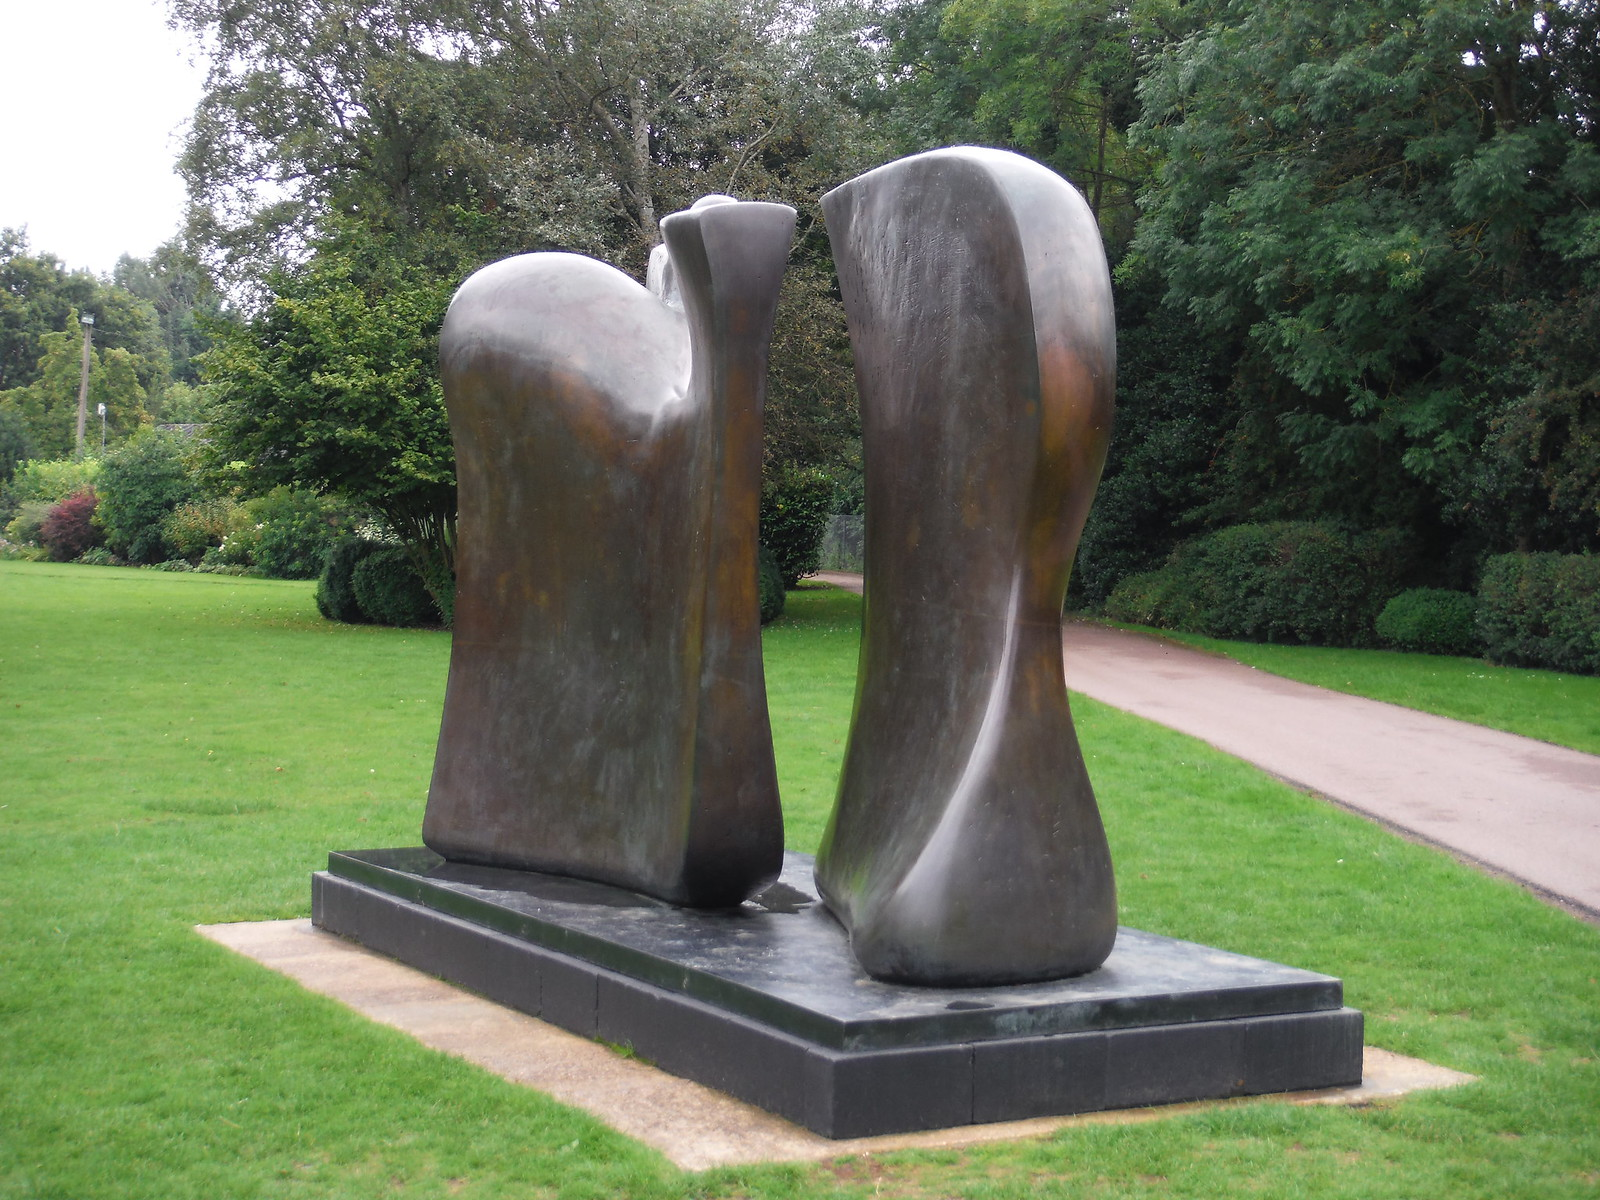 Knife Edge Two Piece (1962-65) SWC Walk 164 Roydon to Sawbridgeworth via Henry Moore Foundation